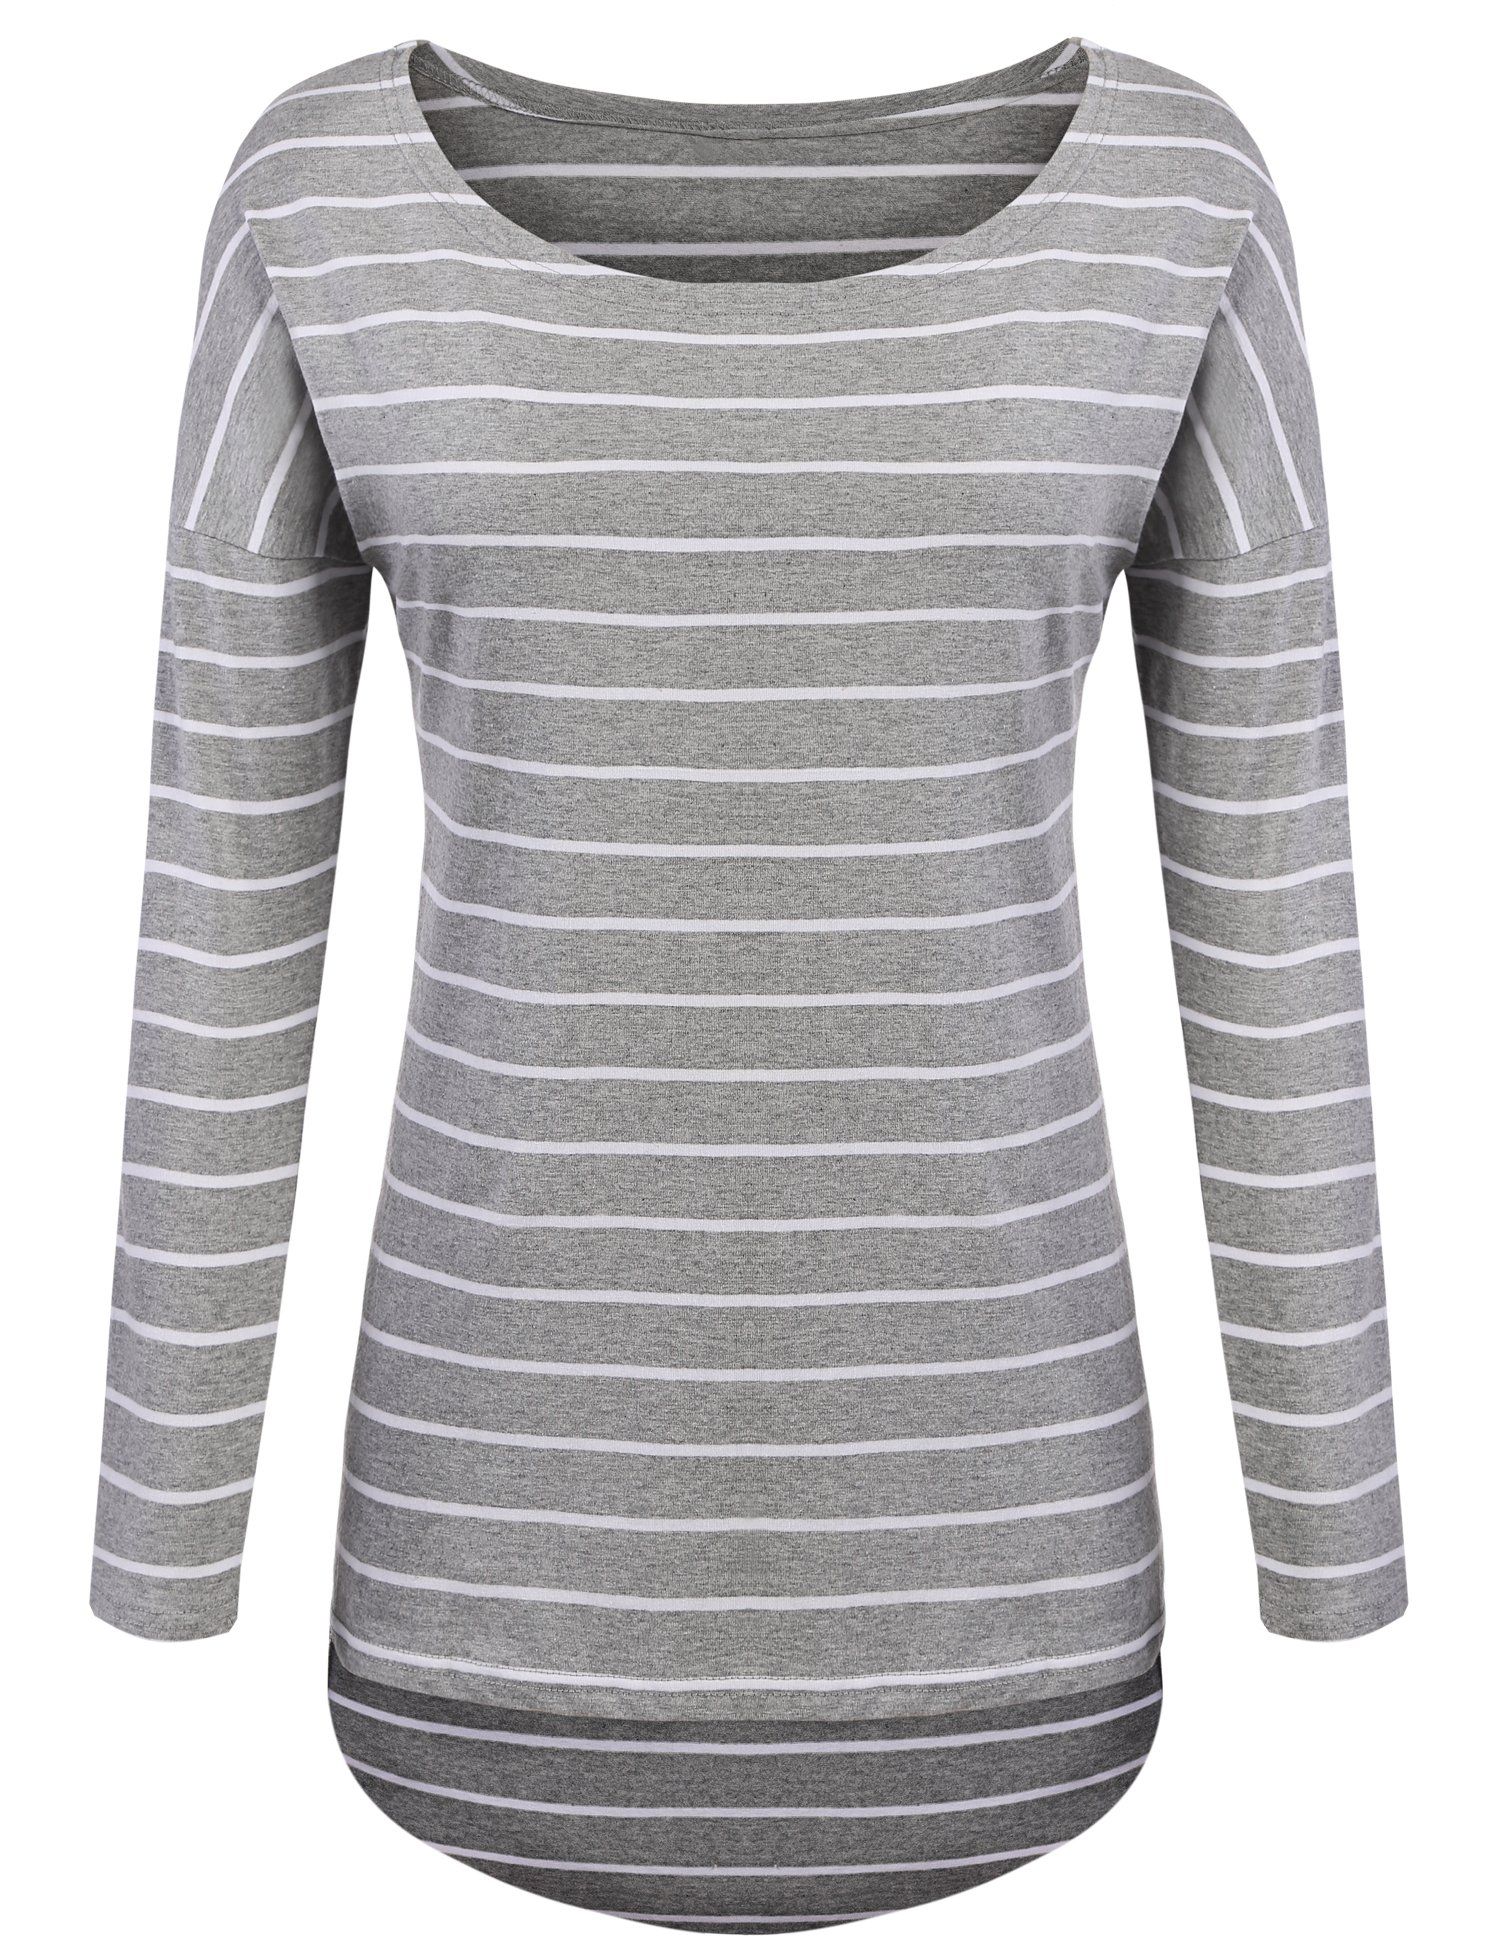 56cd76113f4291 Galleon - POGTMM Grey Striped Long Sleeve Shirt (M